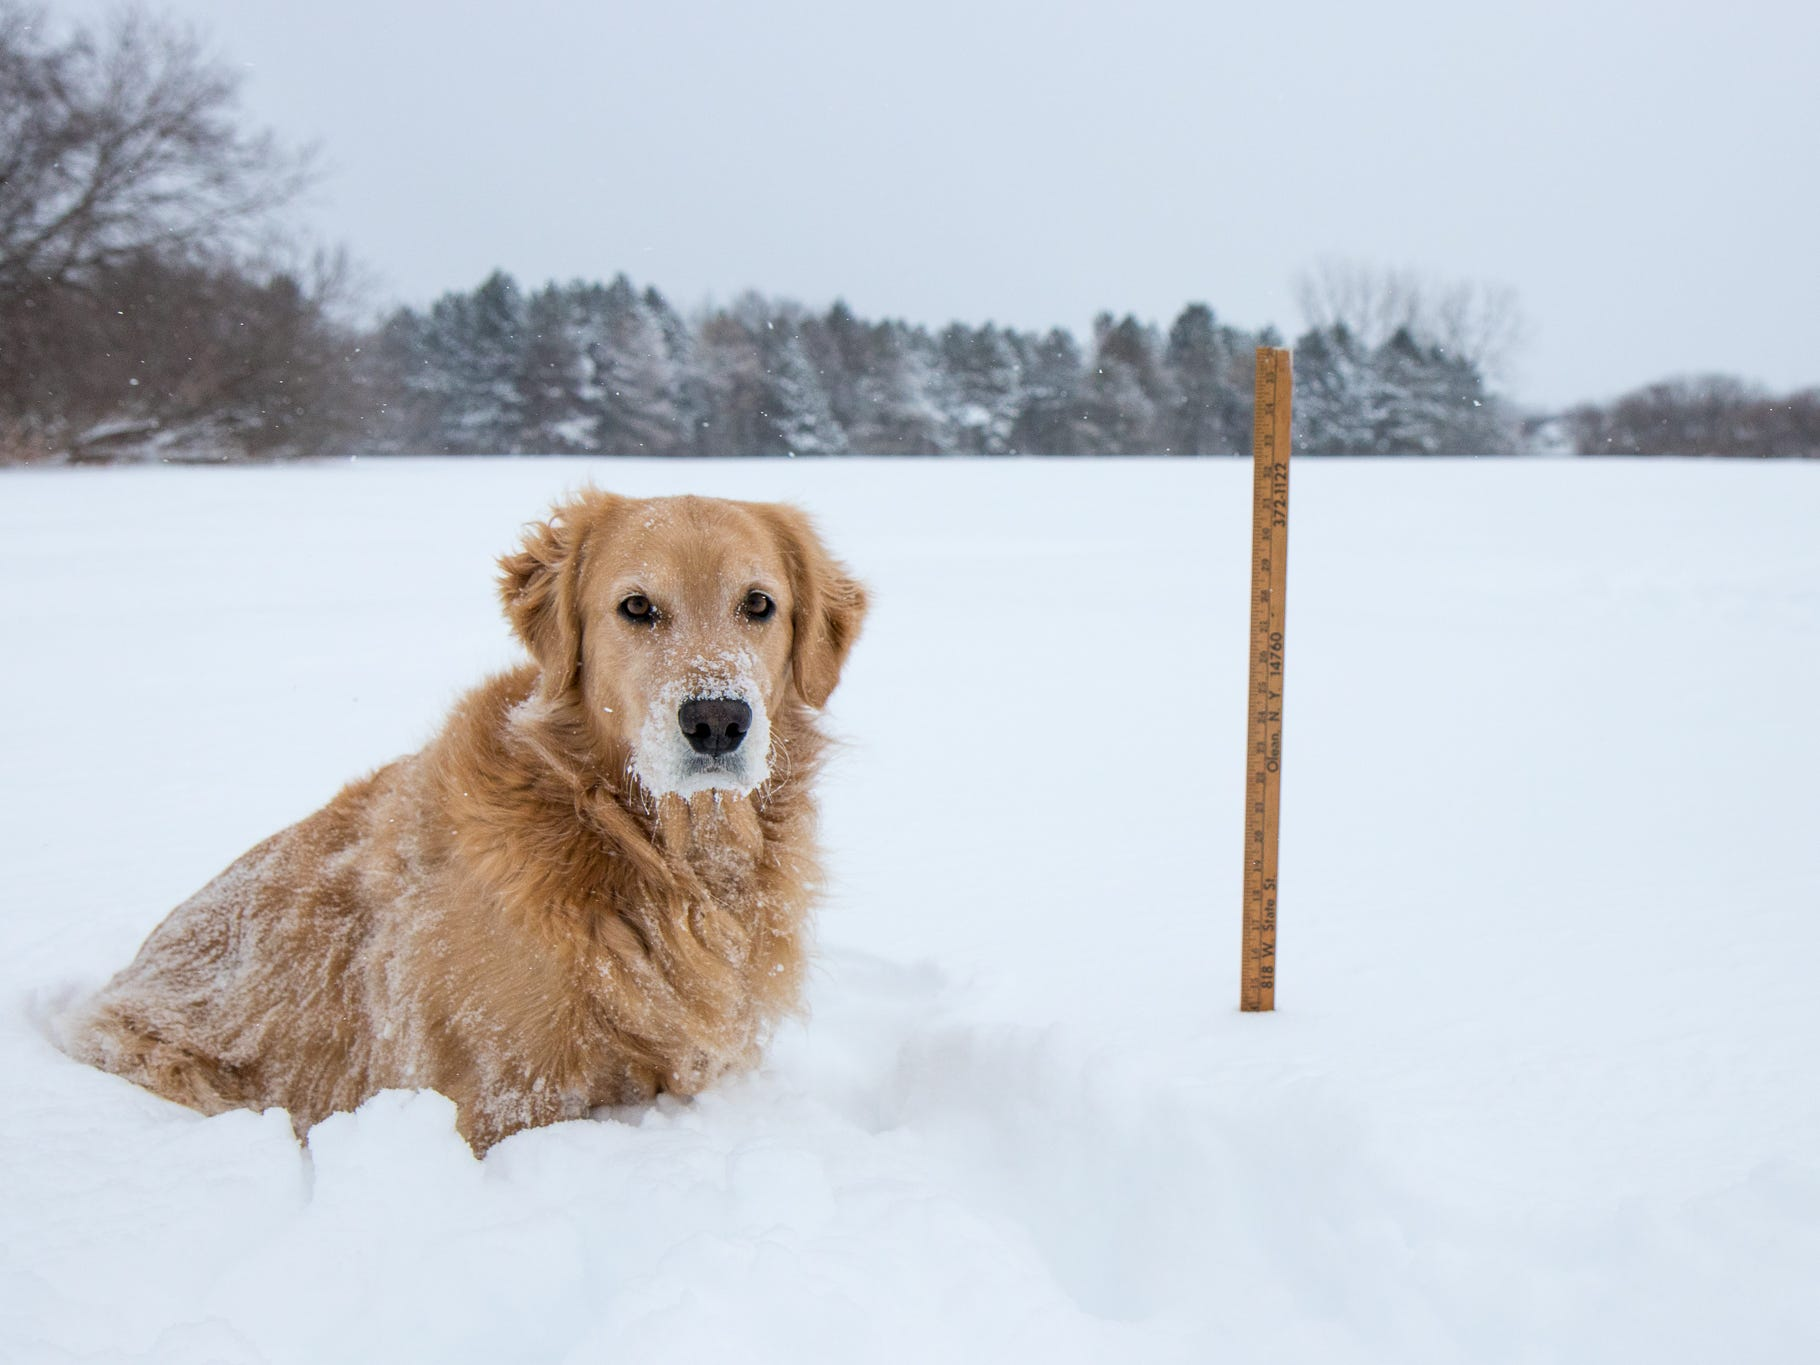 Hilton received 14 inches of snow - or almost two-thirds of a golden retriever - as of Sunday afternoon.